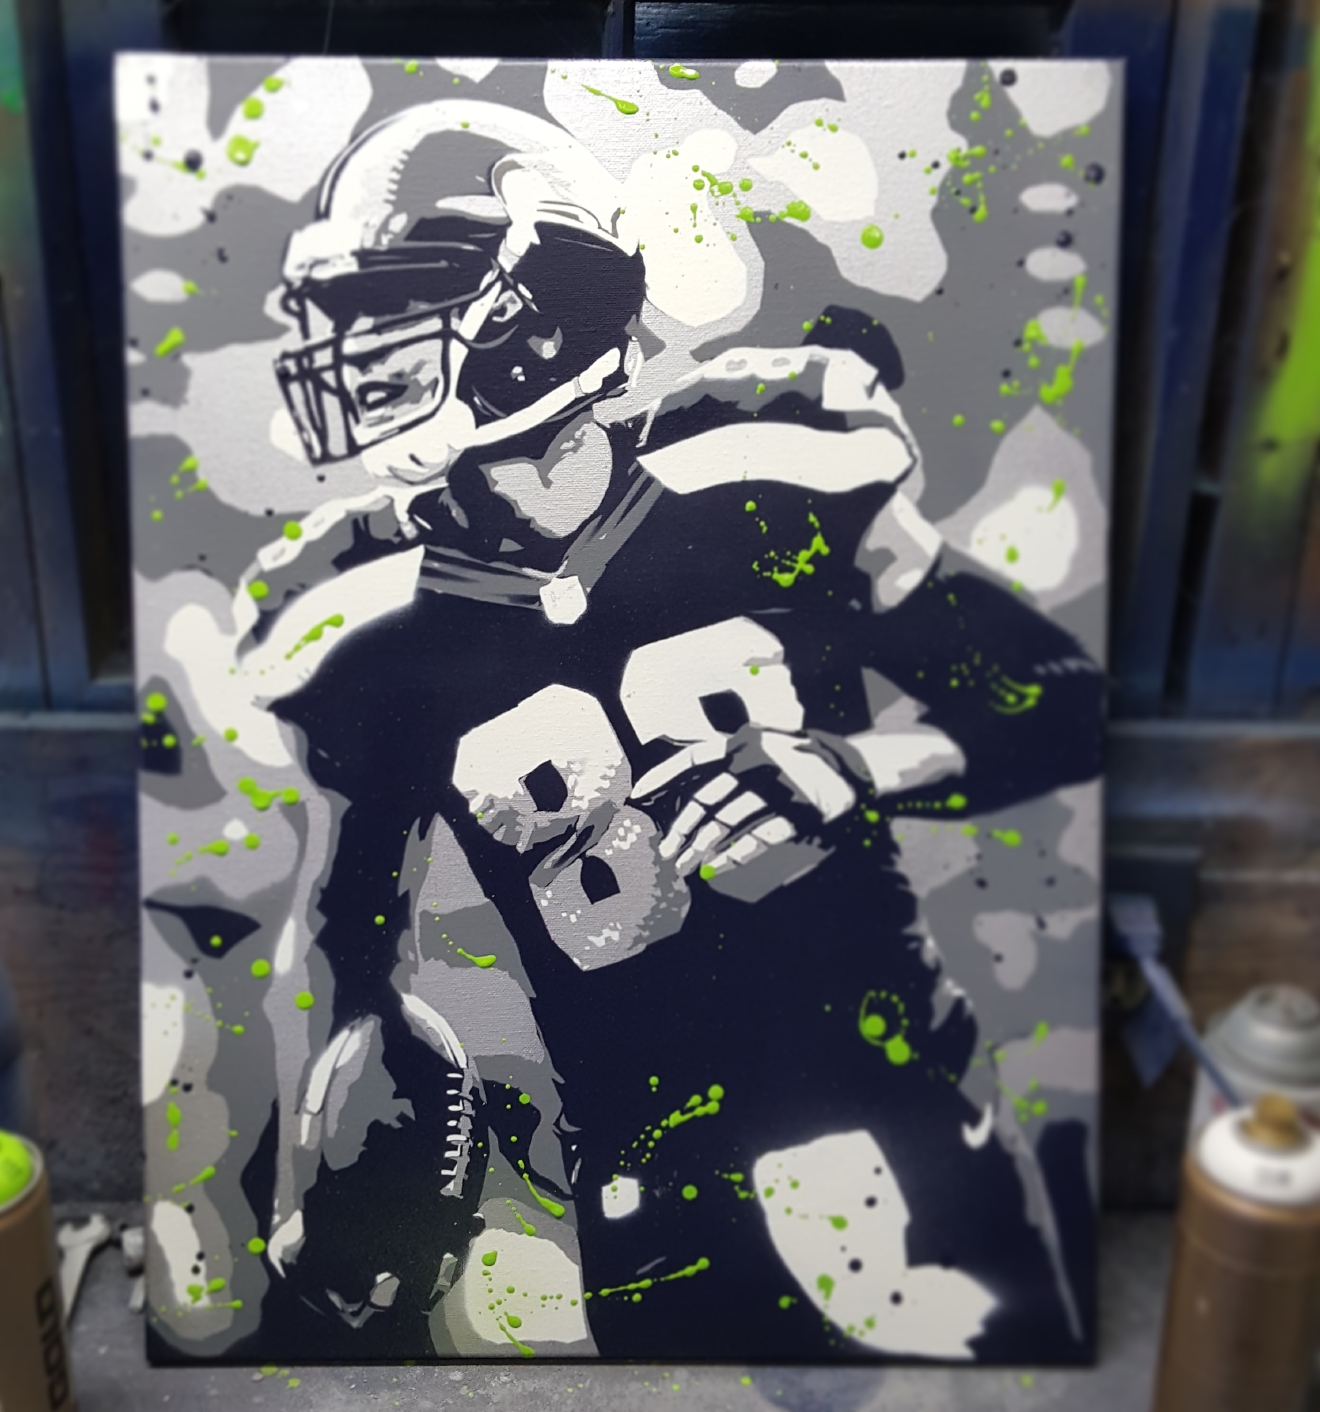 I really think the edginess of spray paint and the rawness of sports go well together. (Image: Kurt Foerster)